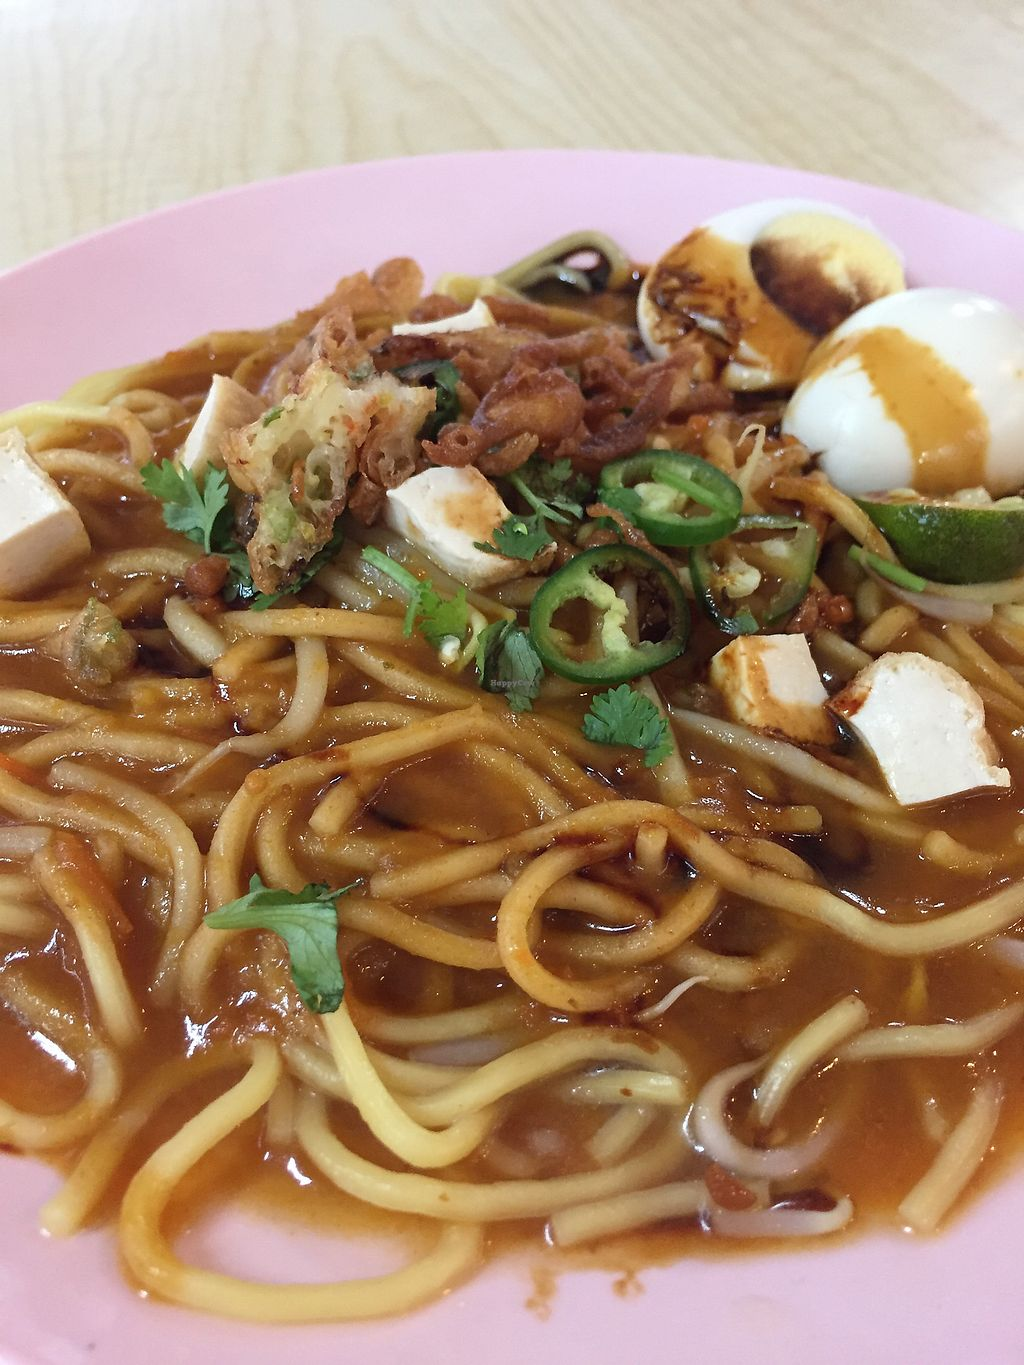 """Photo of CLOSED: Eastern Pure Vegetarian Food  by <a href=""""/members/profile/verywanderful"""">verywanderful</a> <br/>Mee Rubus. Malay Lor Mee. Noodle with thick sauce, Malay style <br/> August 20, 2017  - <a href='/contact/abuse/image/98465/294767'>Report</a>"""